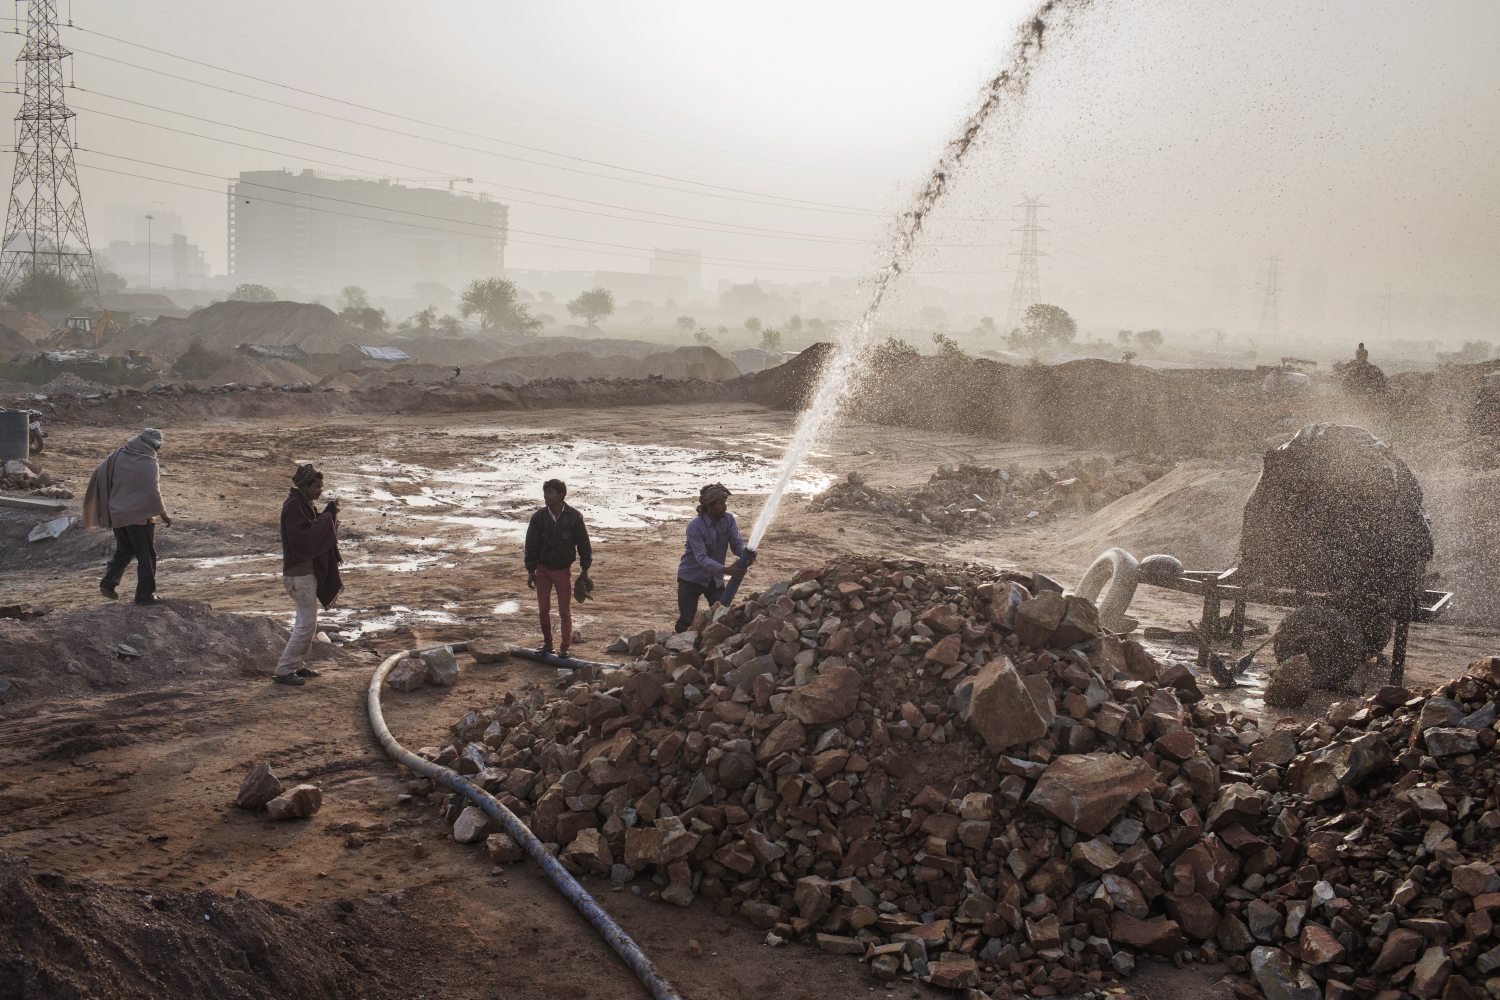 Indian workers wash stone before it is crushed into sand at an Illegal mine near Raipur Village in Greater Noida, Uttar Pradesh, India.